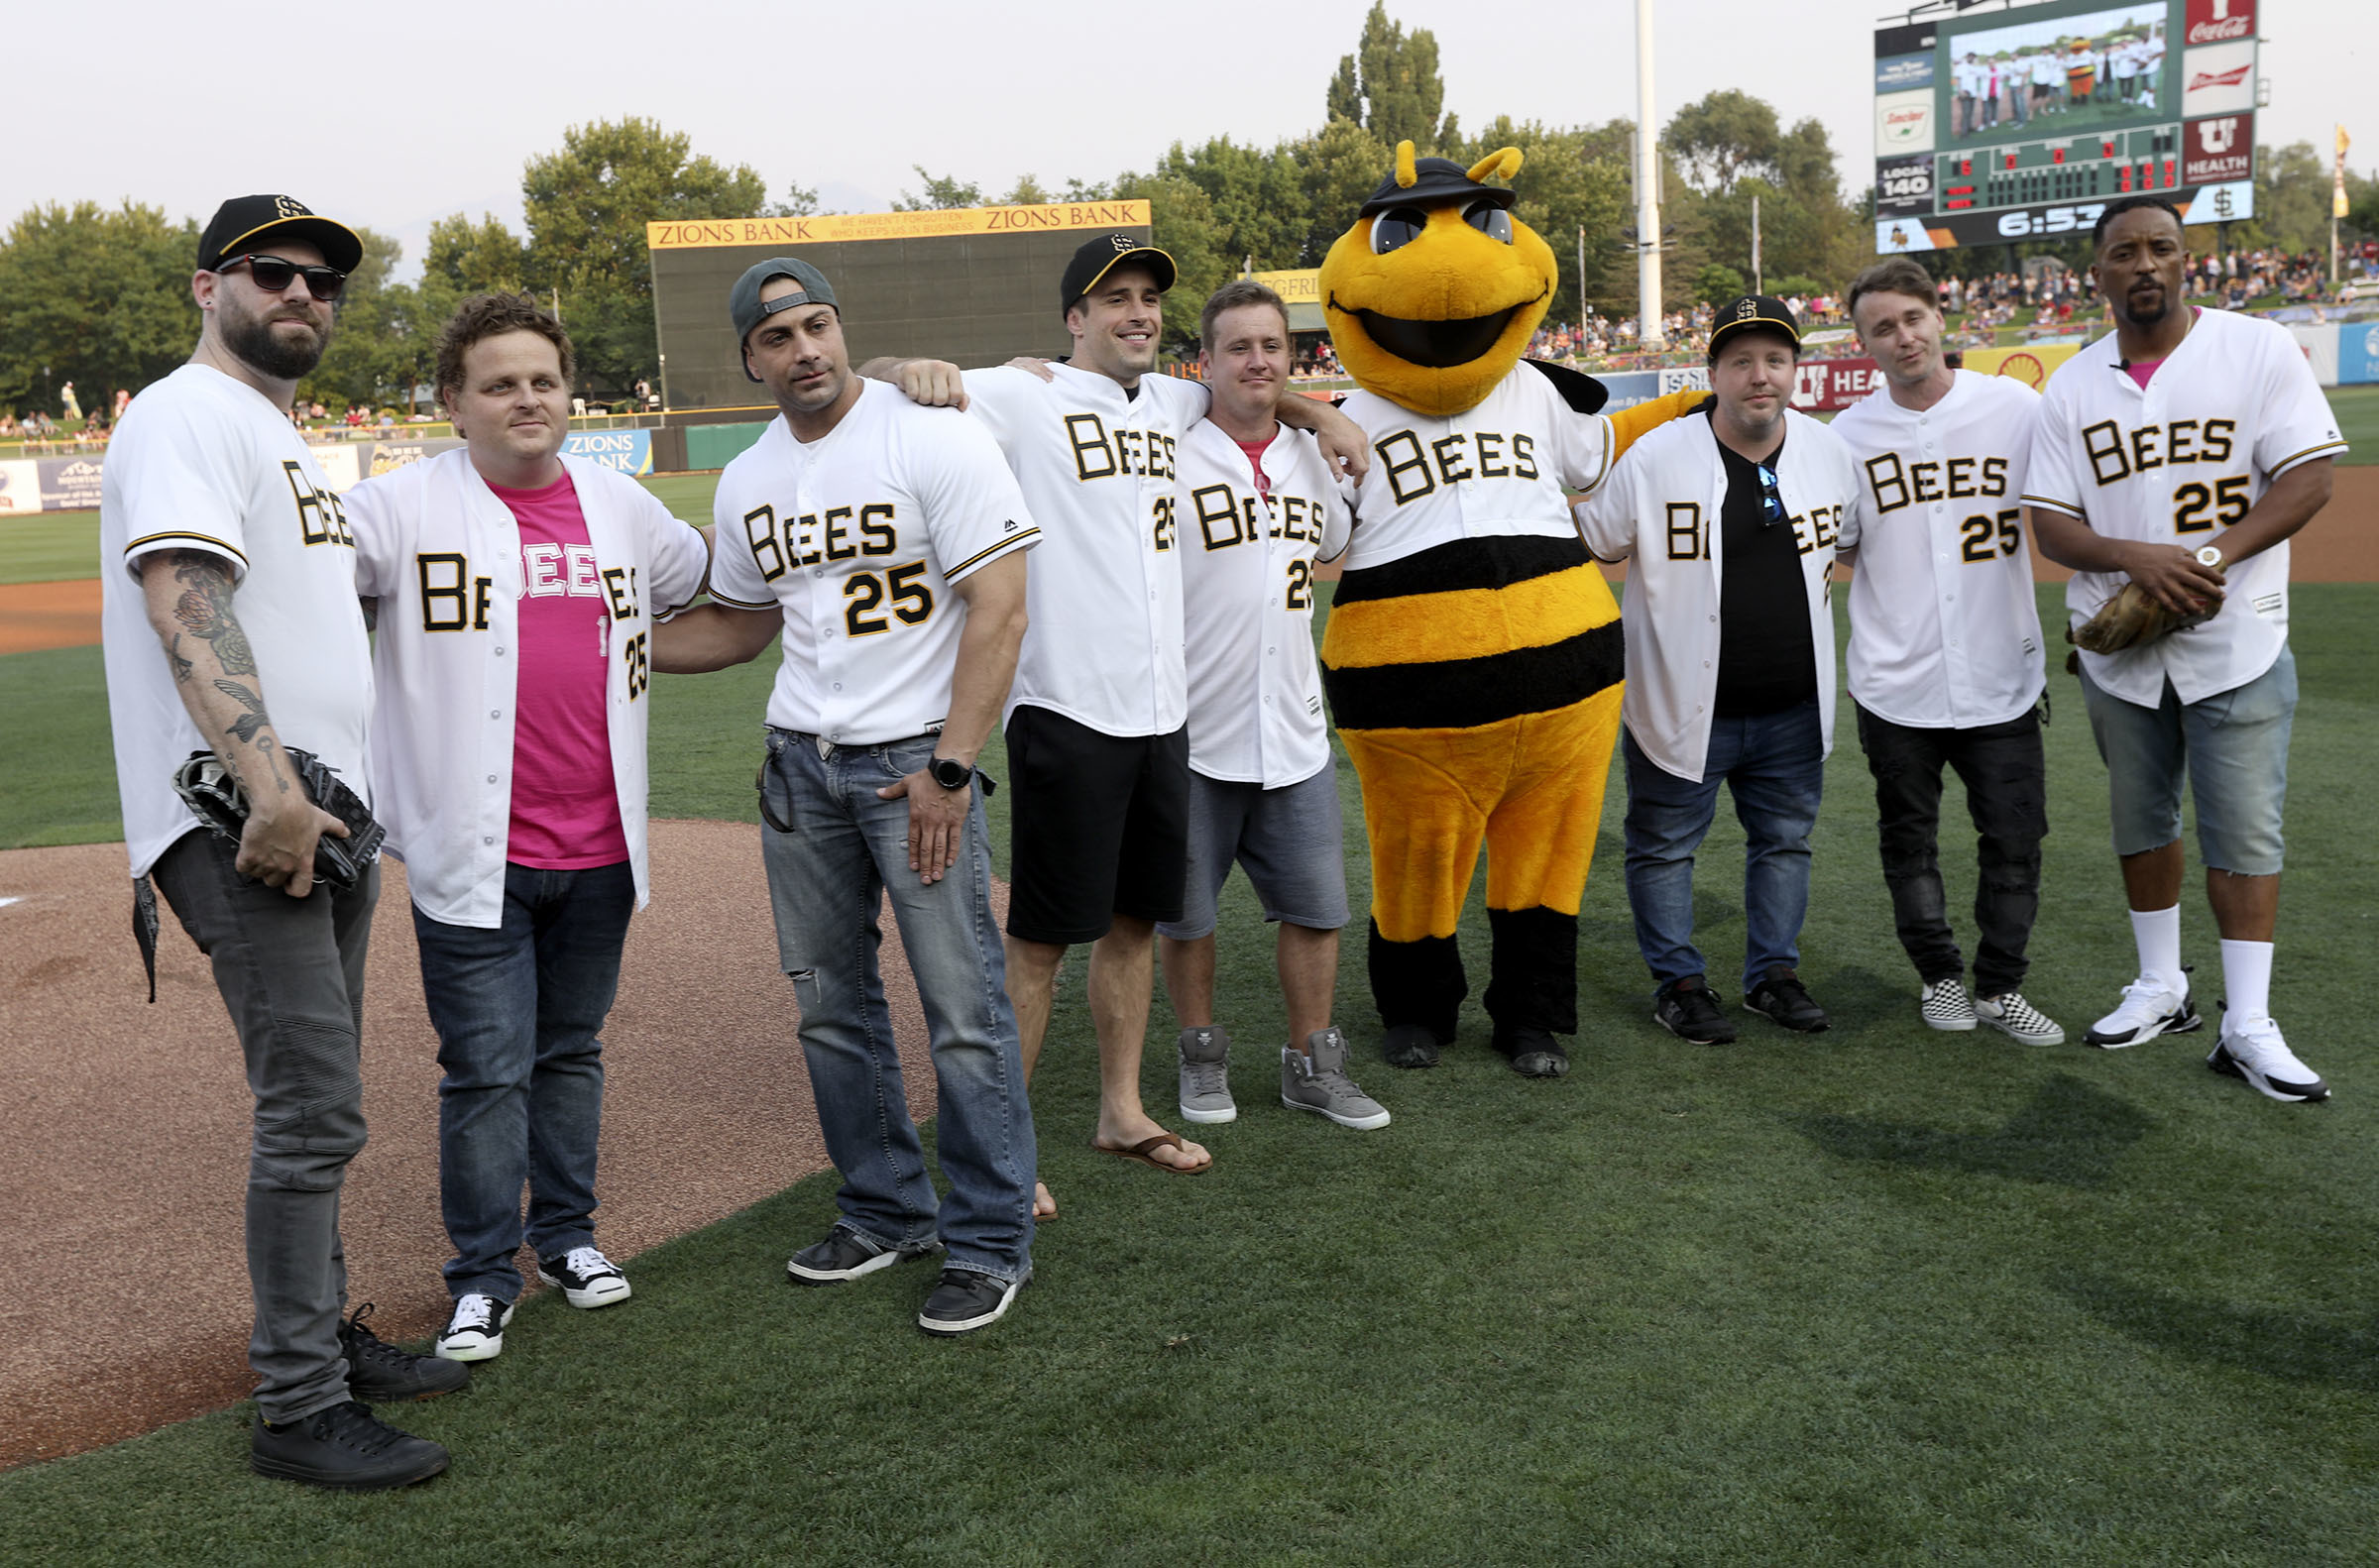 The cast of The Sandlot gathers to celebrate the movie's 25th anniversary at Smith's Ballpark in Salt Lake City, on Thursday, Aug. 9, 2018.